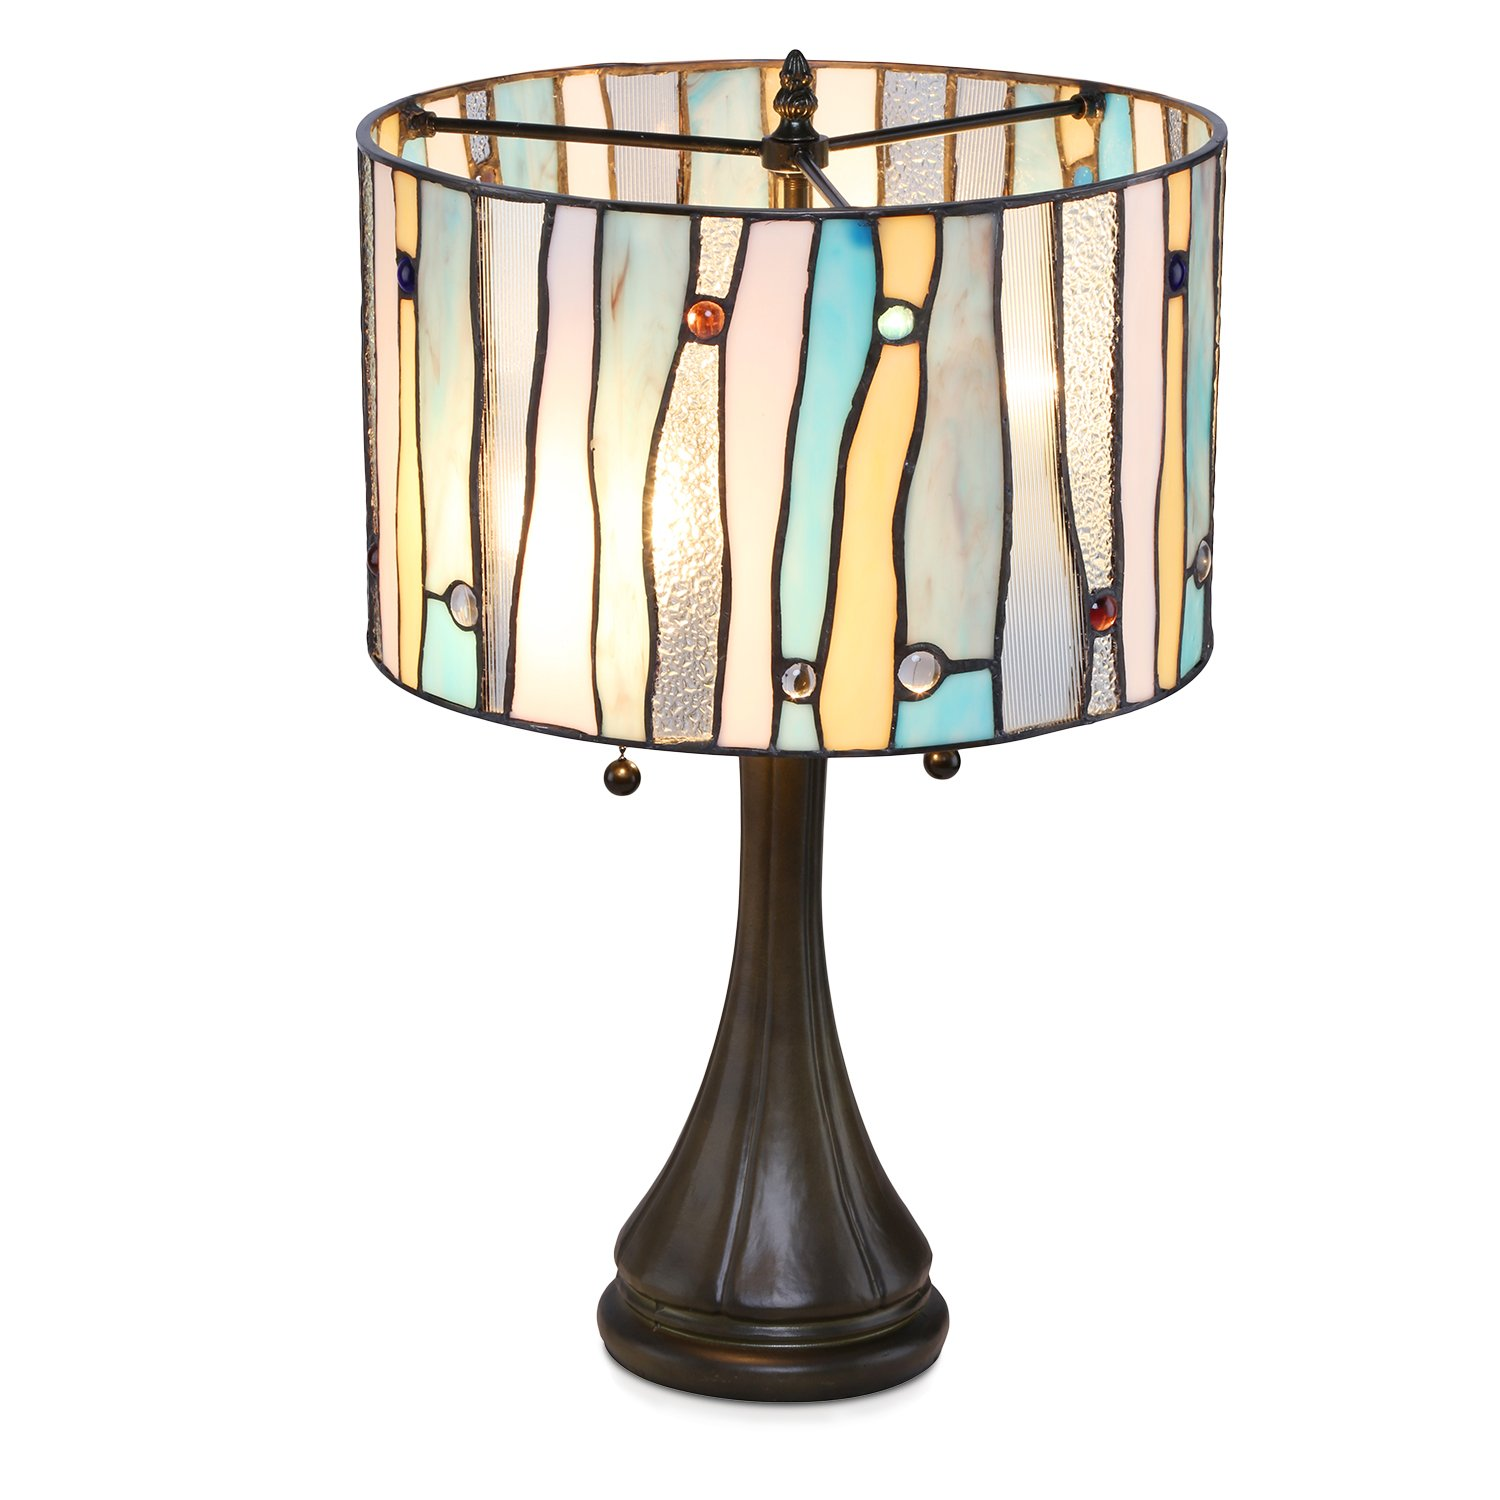 Serena Du0027italia Tiffany Style Table Lamps Contemporary, Mosaic Stained  Glass Lamp, Antique, Victorian, Vintage Styling, Double Pull Chain (Blue,  White, ...